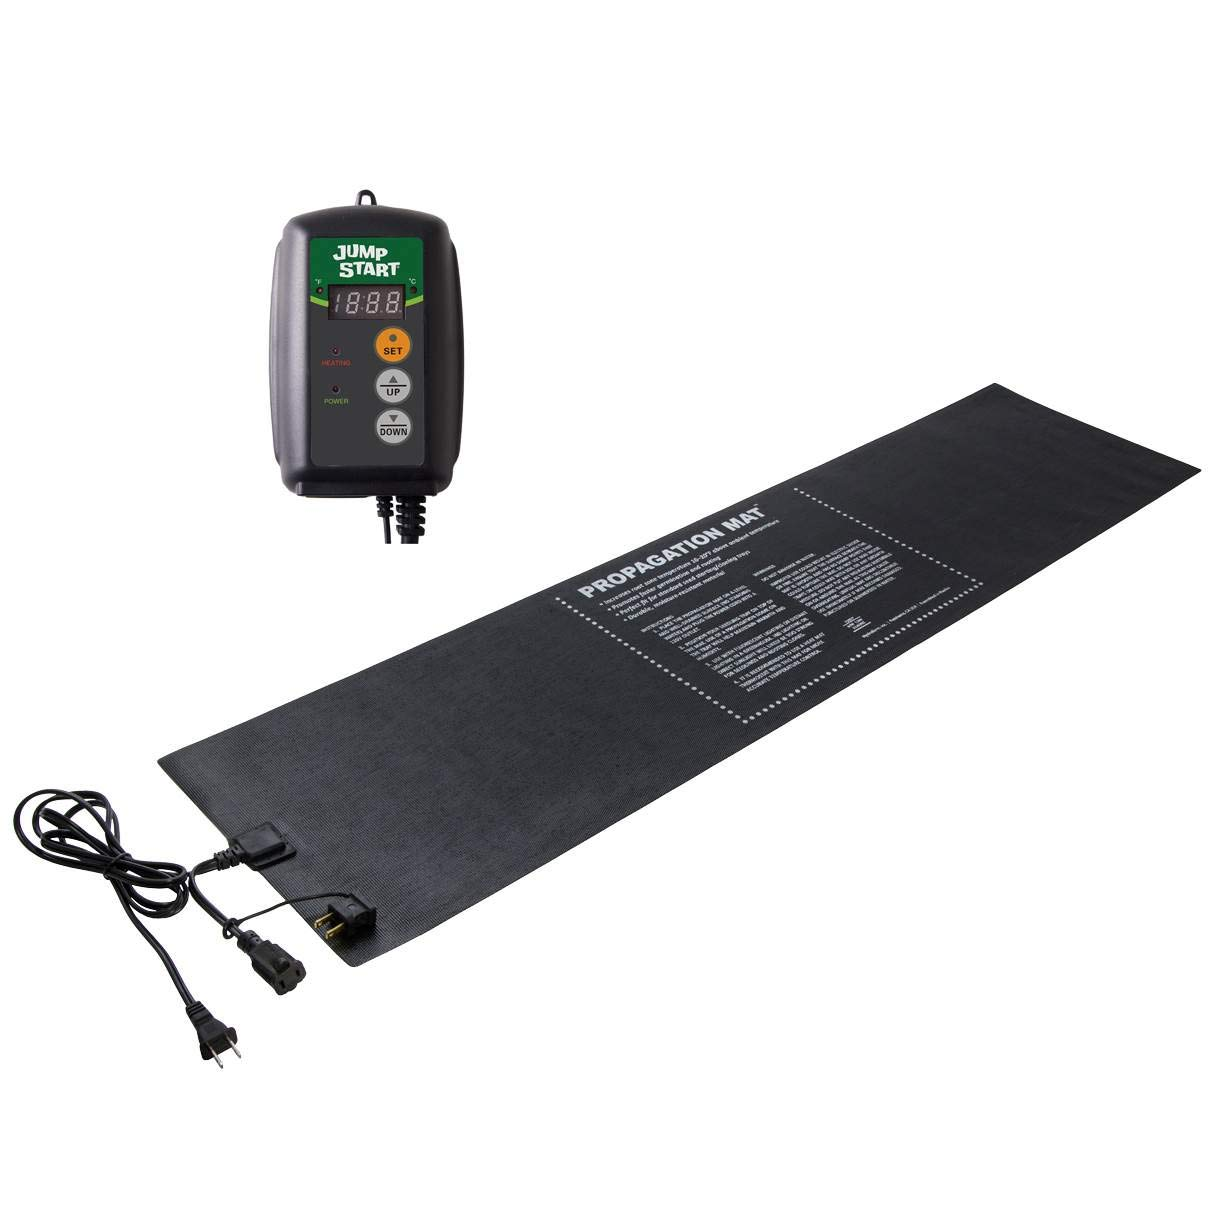 Hydrofarm 12 x 48-Inch Propagation Mat + Digital Thermostat